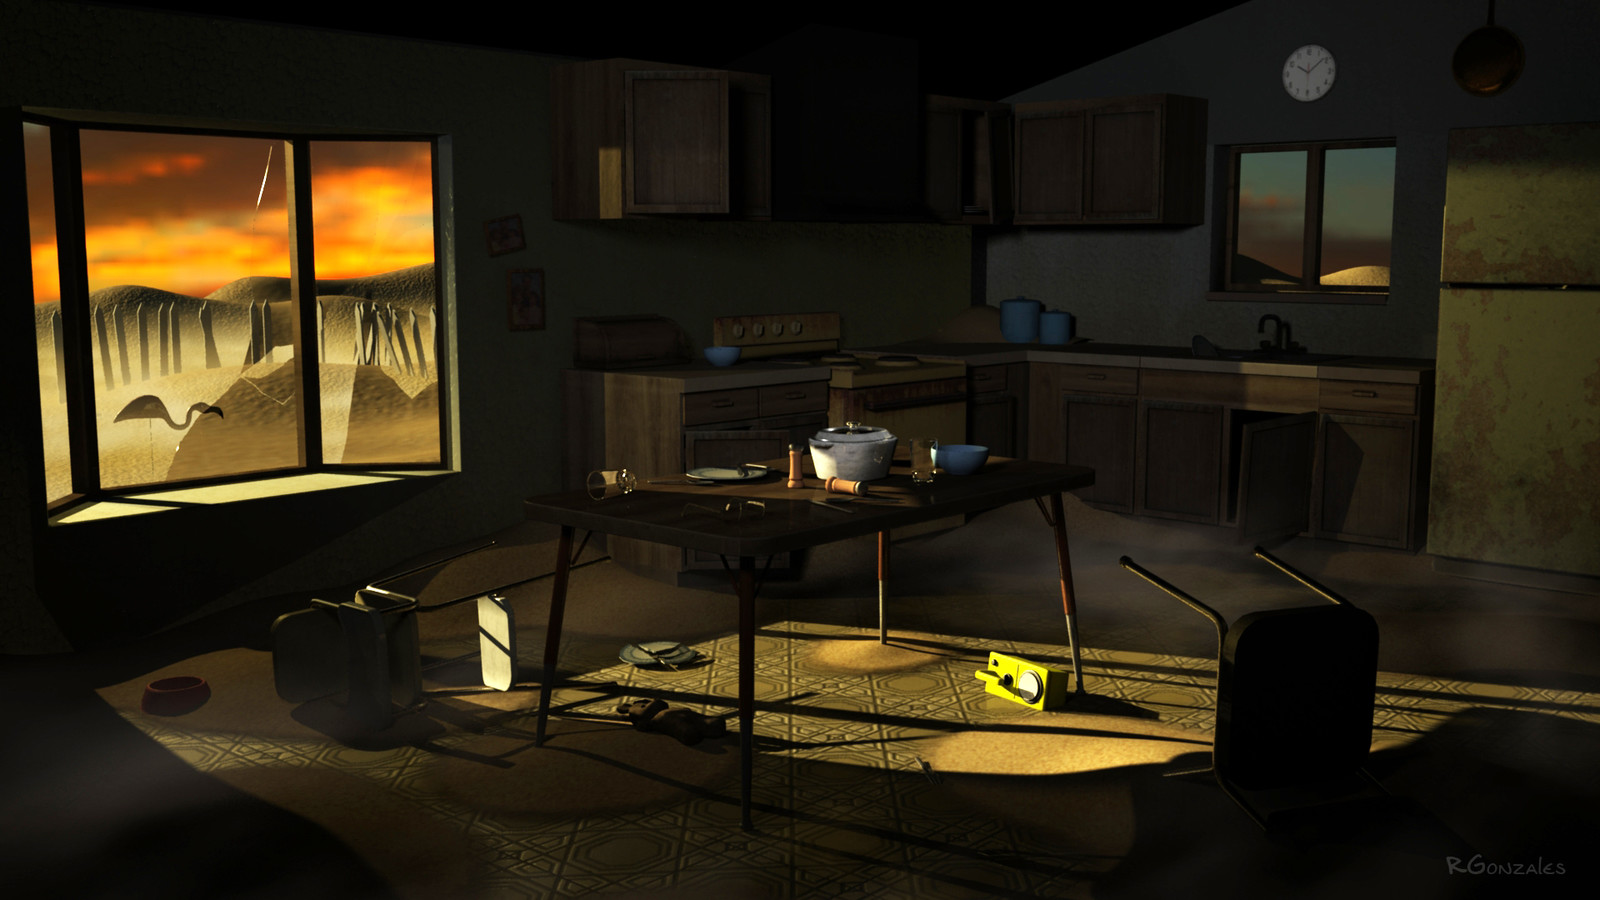 interior render - kitchen